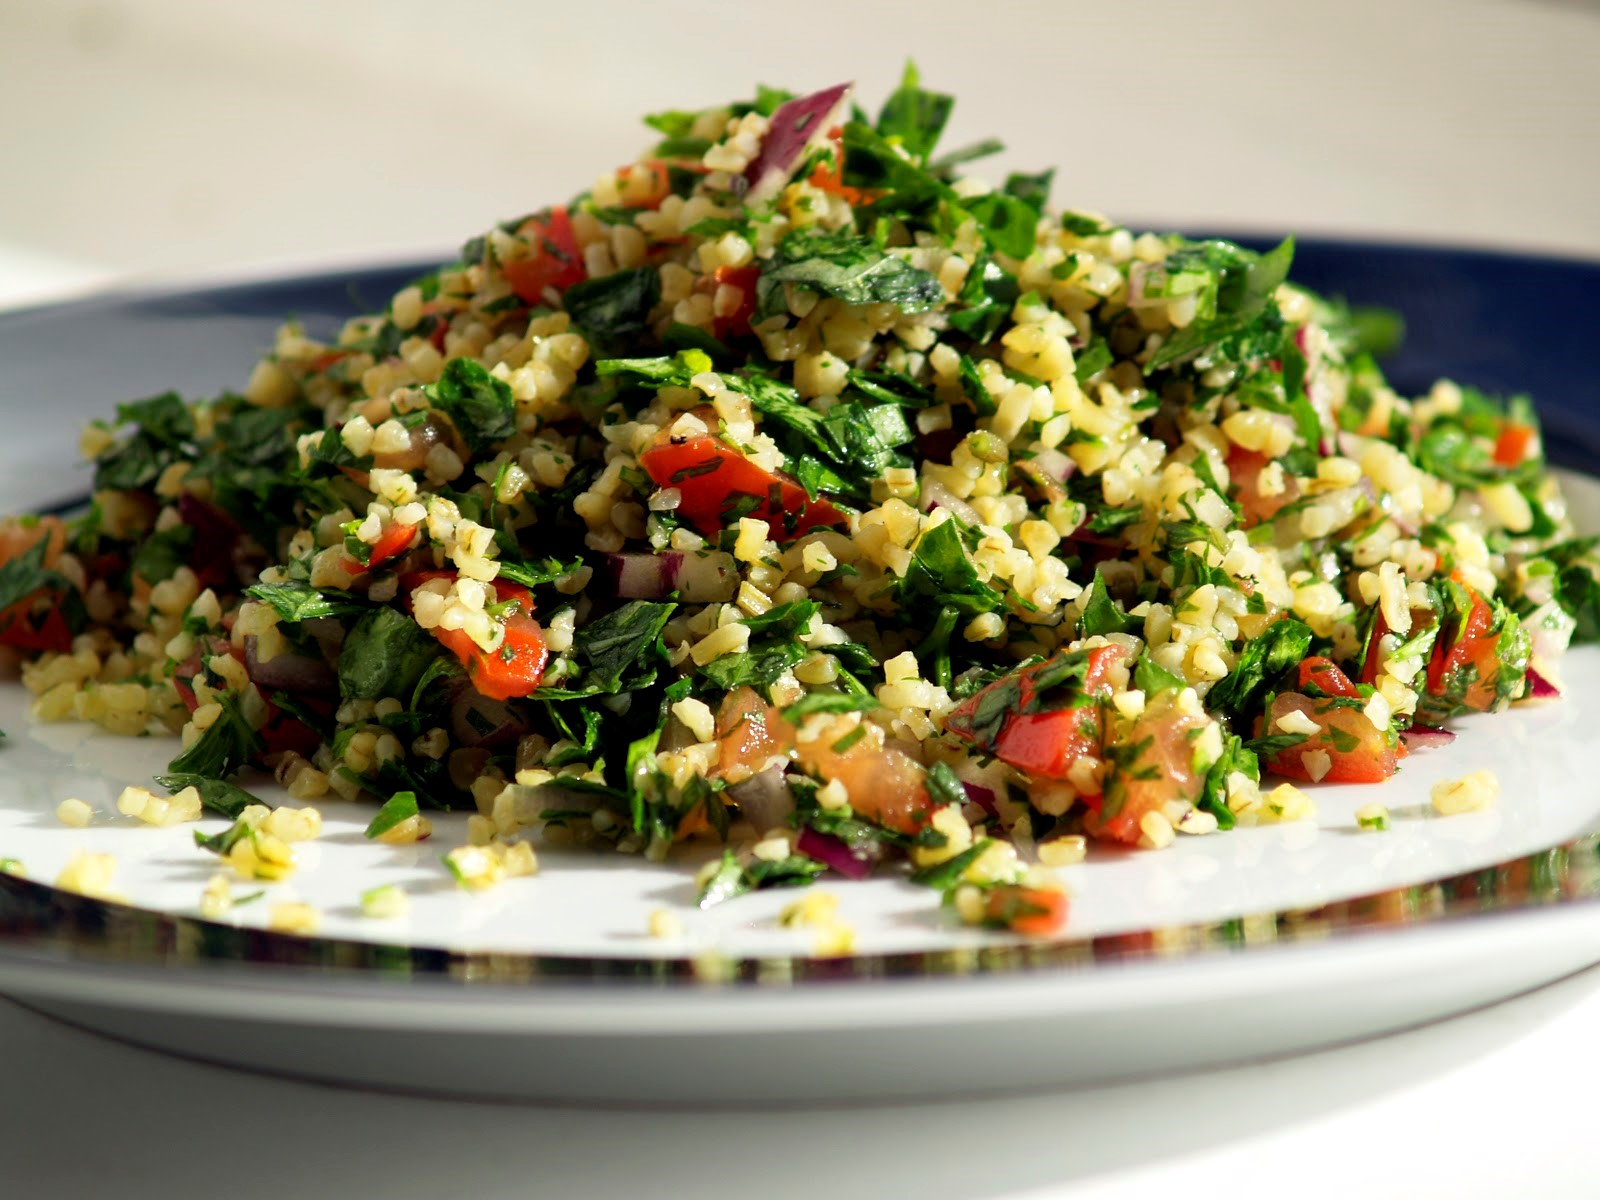 Tabbouleh, a Mediterranean recipe loaded with prebiotic insoluble fiber